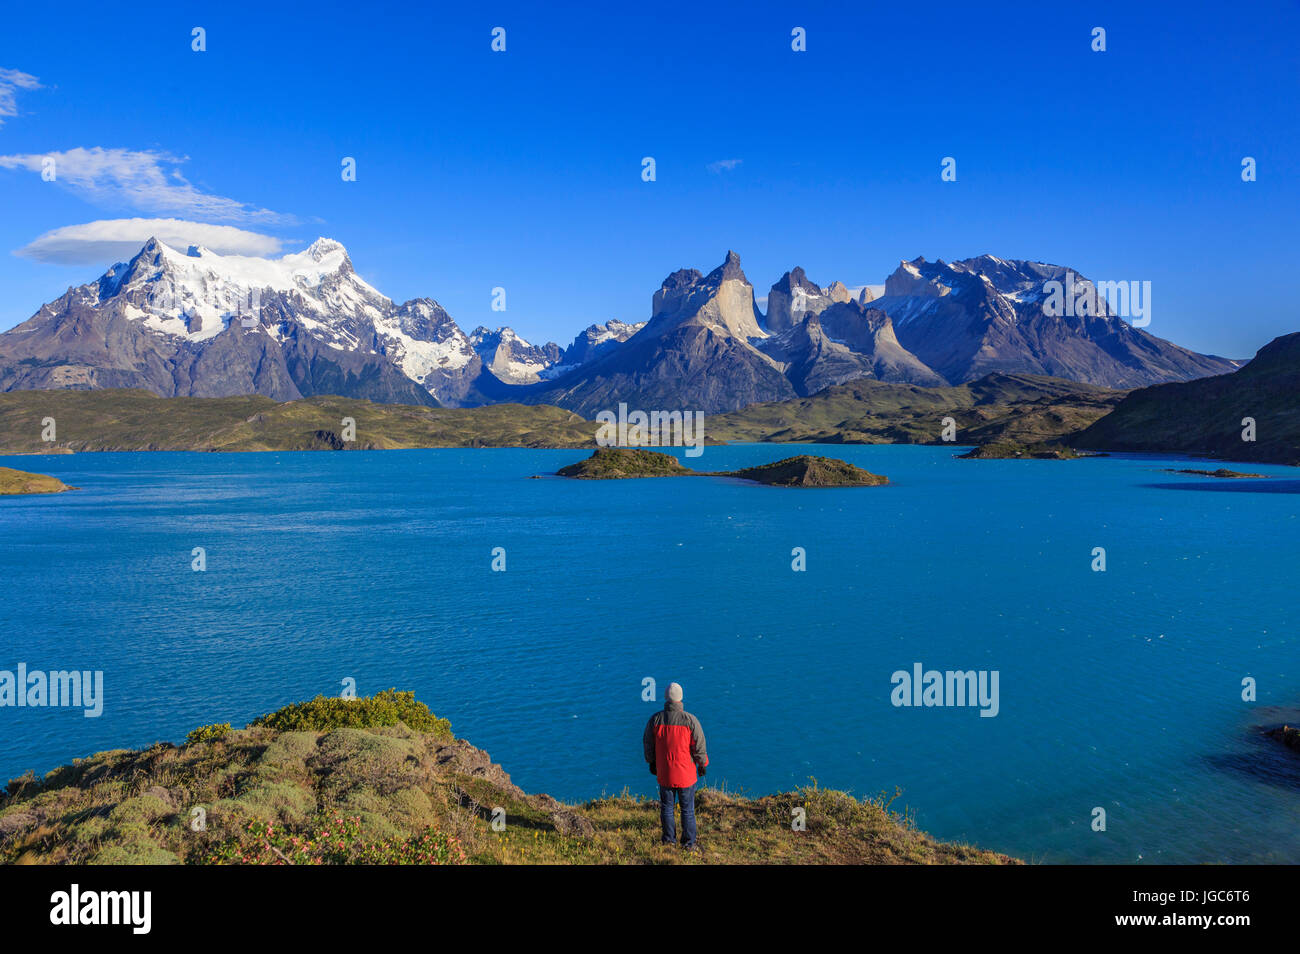 Hiker in the National Park Torres del Paine, Patagonia, Chile - Stock Image